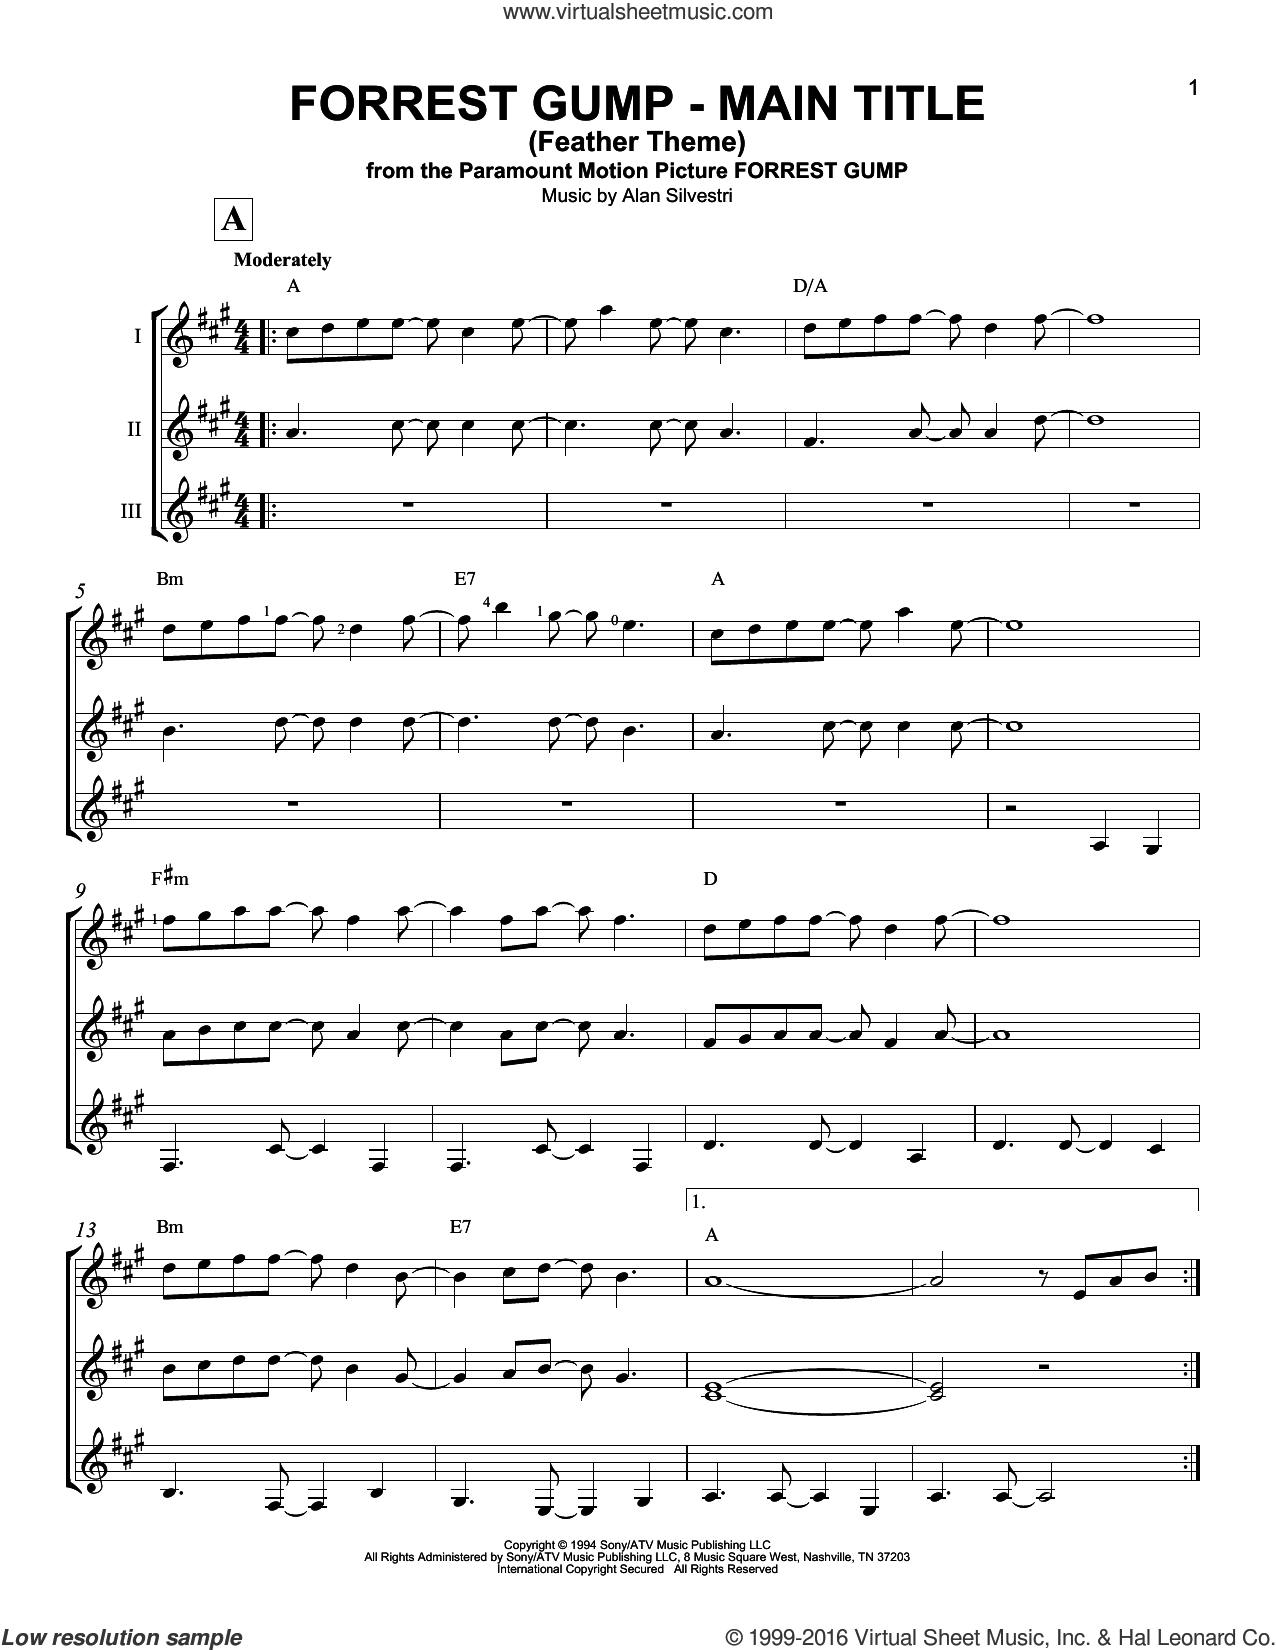 Forrest Gump - Main Title (Feather Theme) sheet music for guitar ensemble by Alan Silvestri. Score Image Preview.